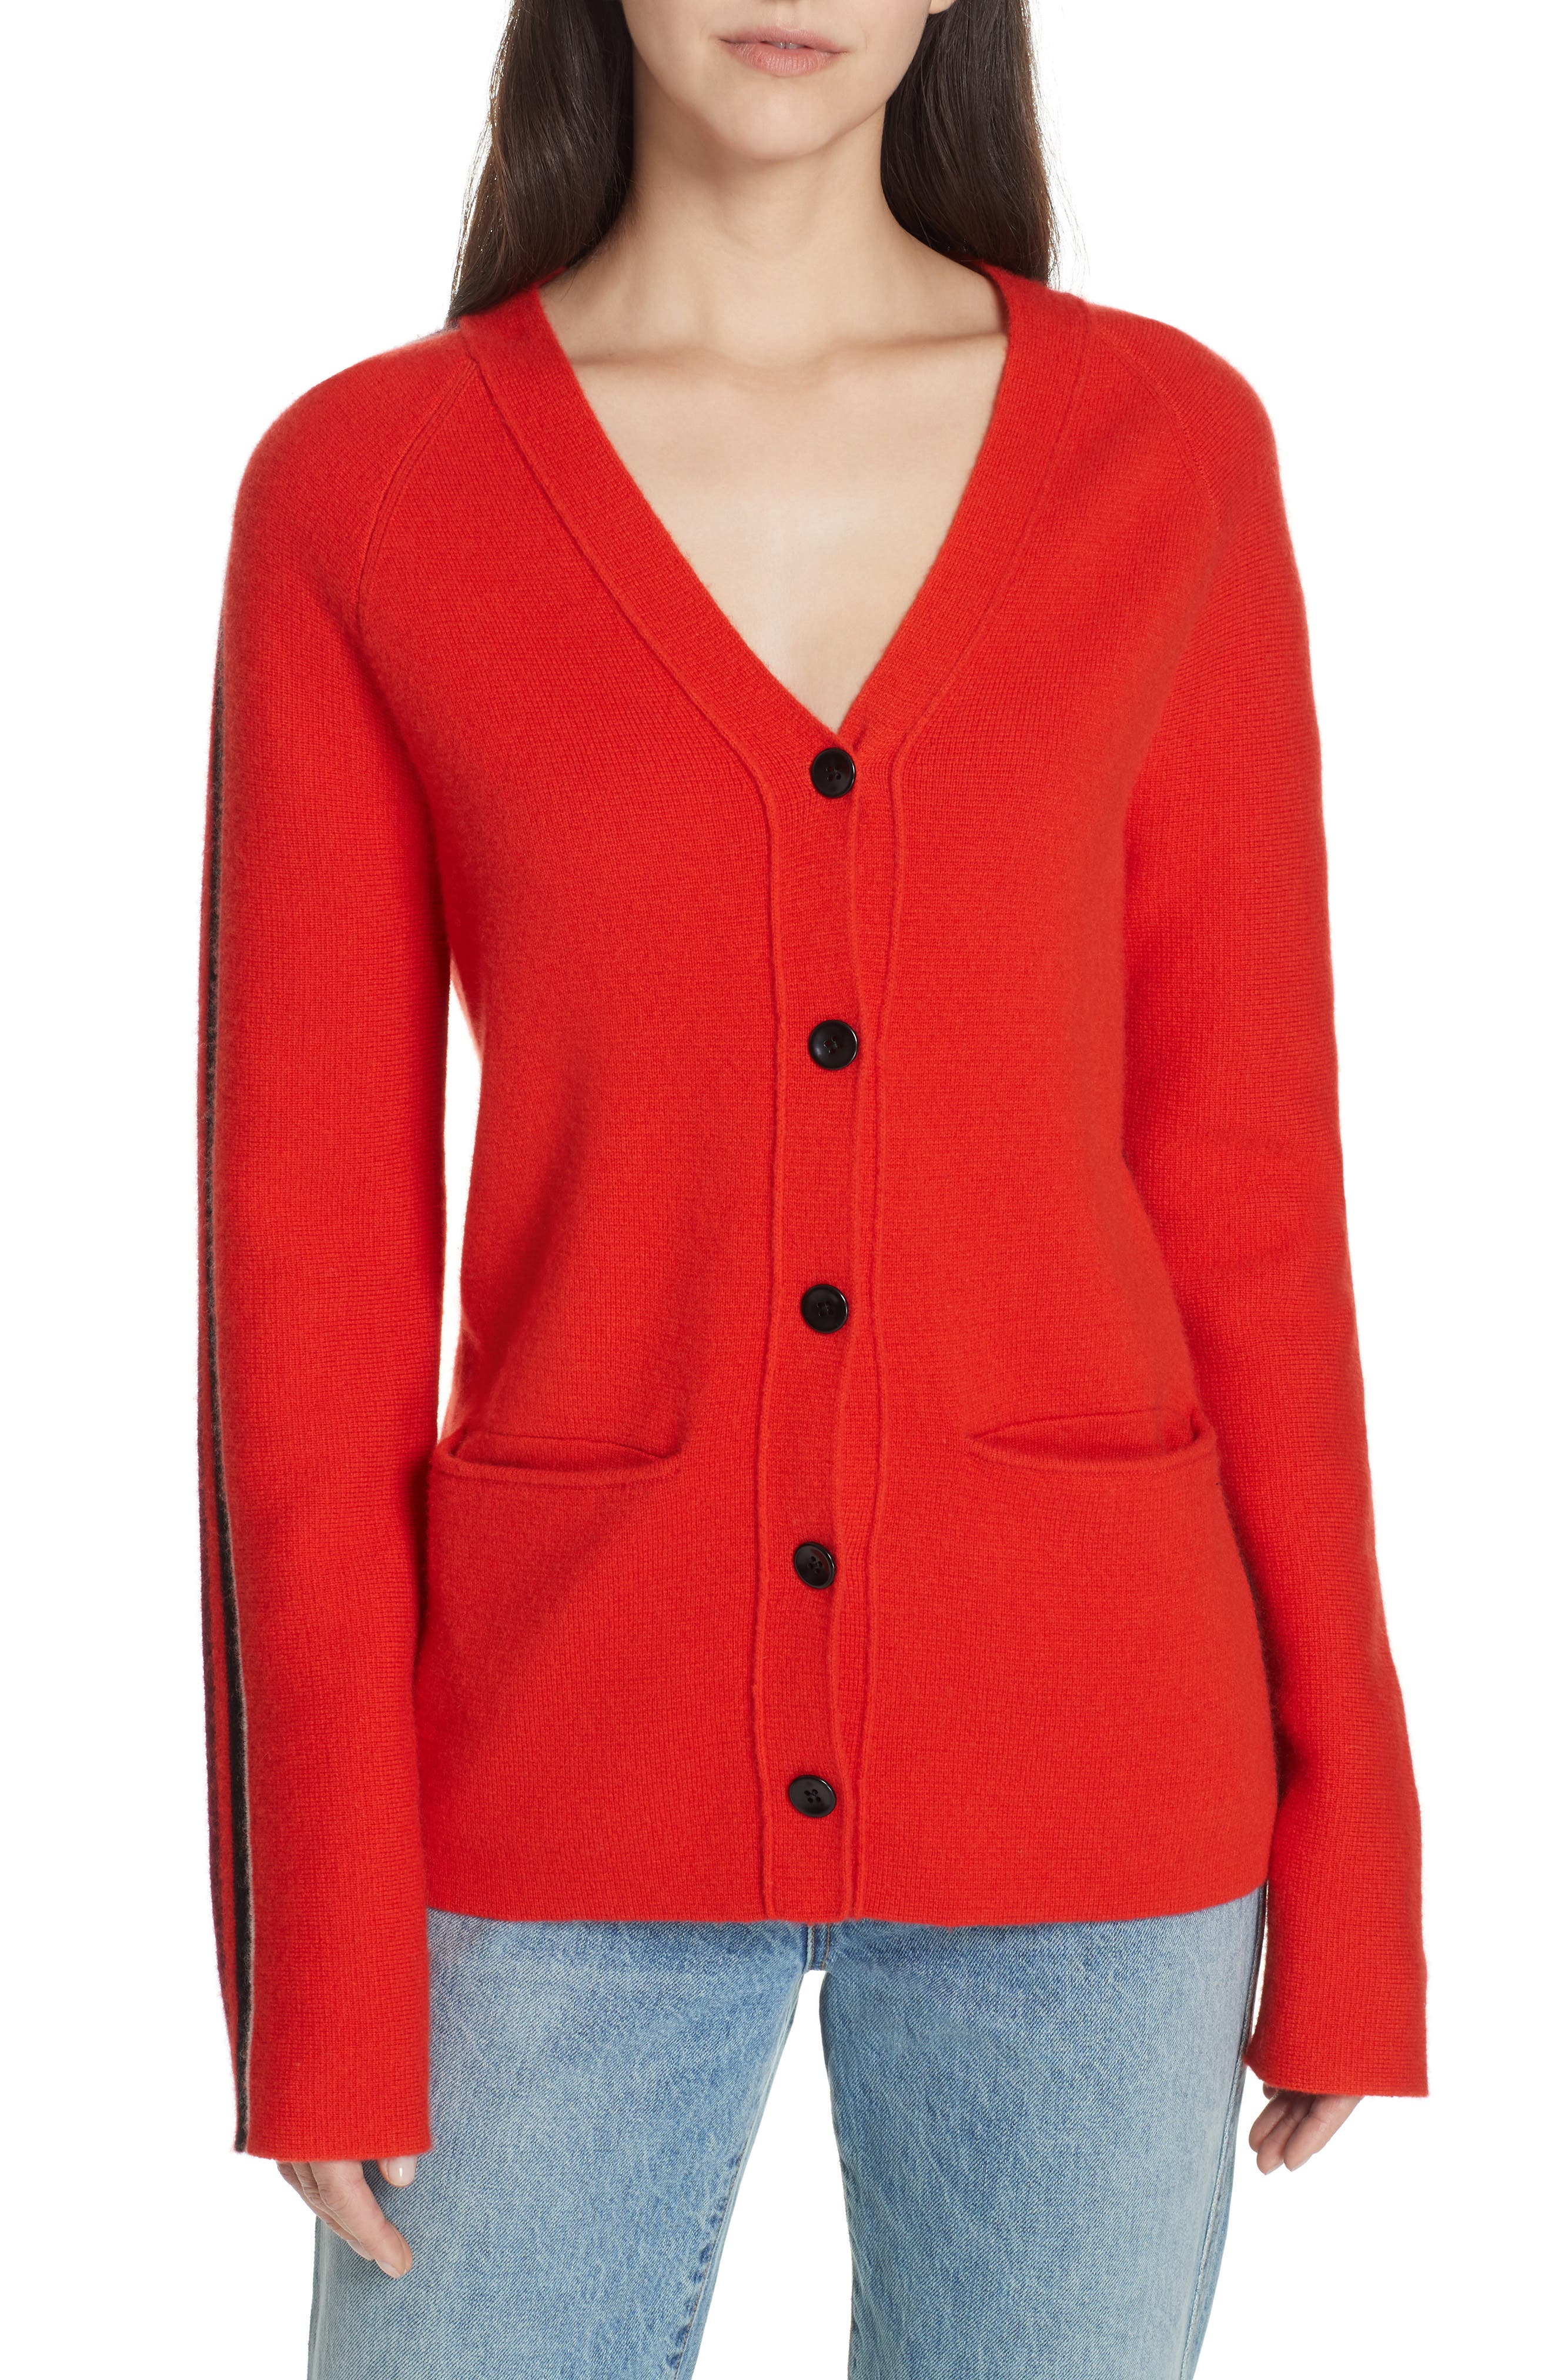 PROENZA SCHOULER, PSWL Stripe Sleeve Merino Wool & Cashmere Cardigan, Main thumbnail 1, color, RED COMBO